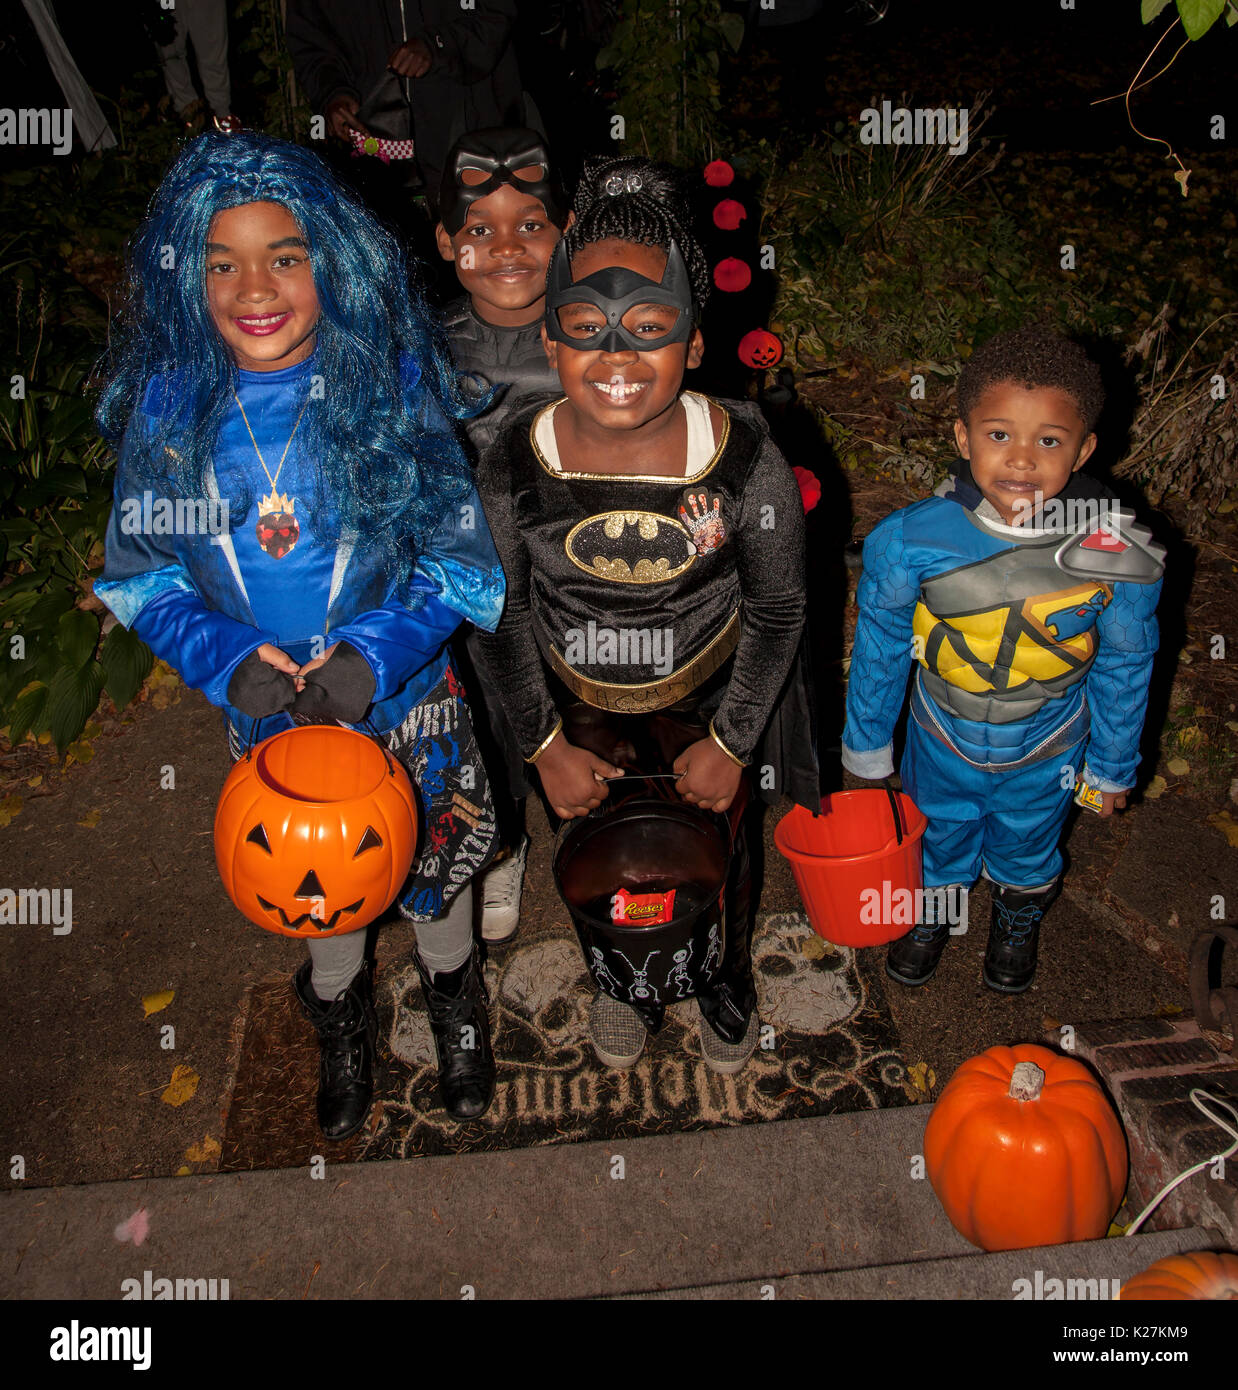 halloween-costumed-as-batman-and-super-heroes-for-trick-and-treating-K27KM9.jpg